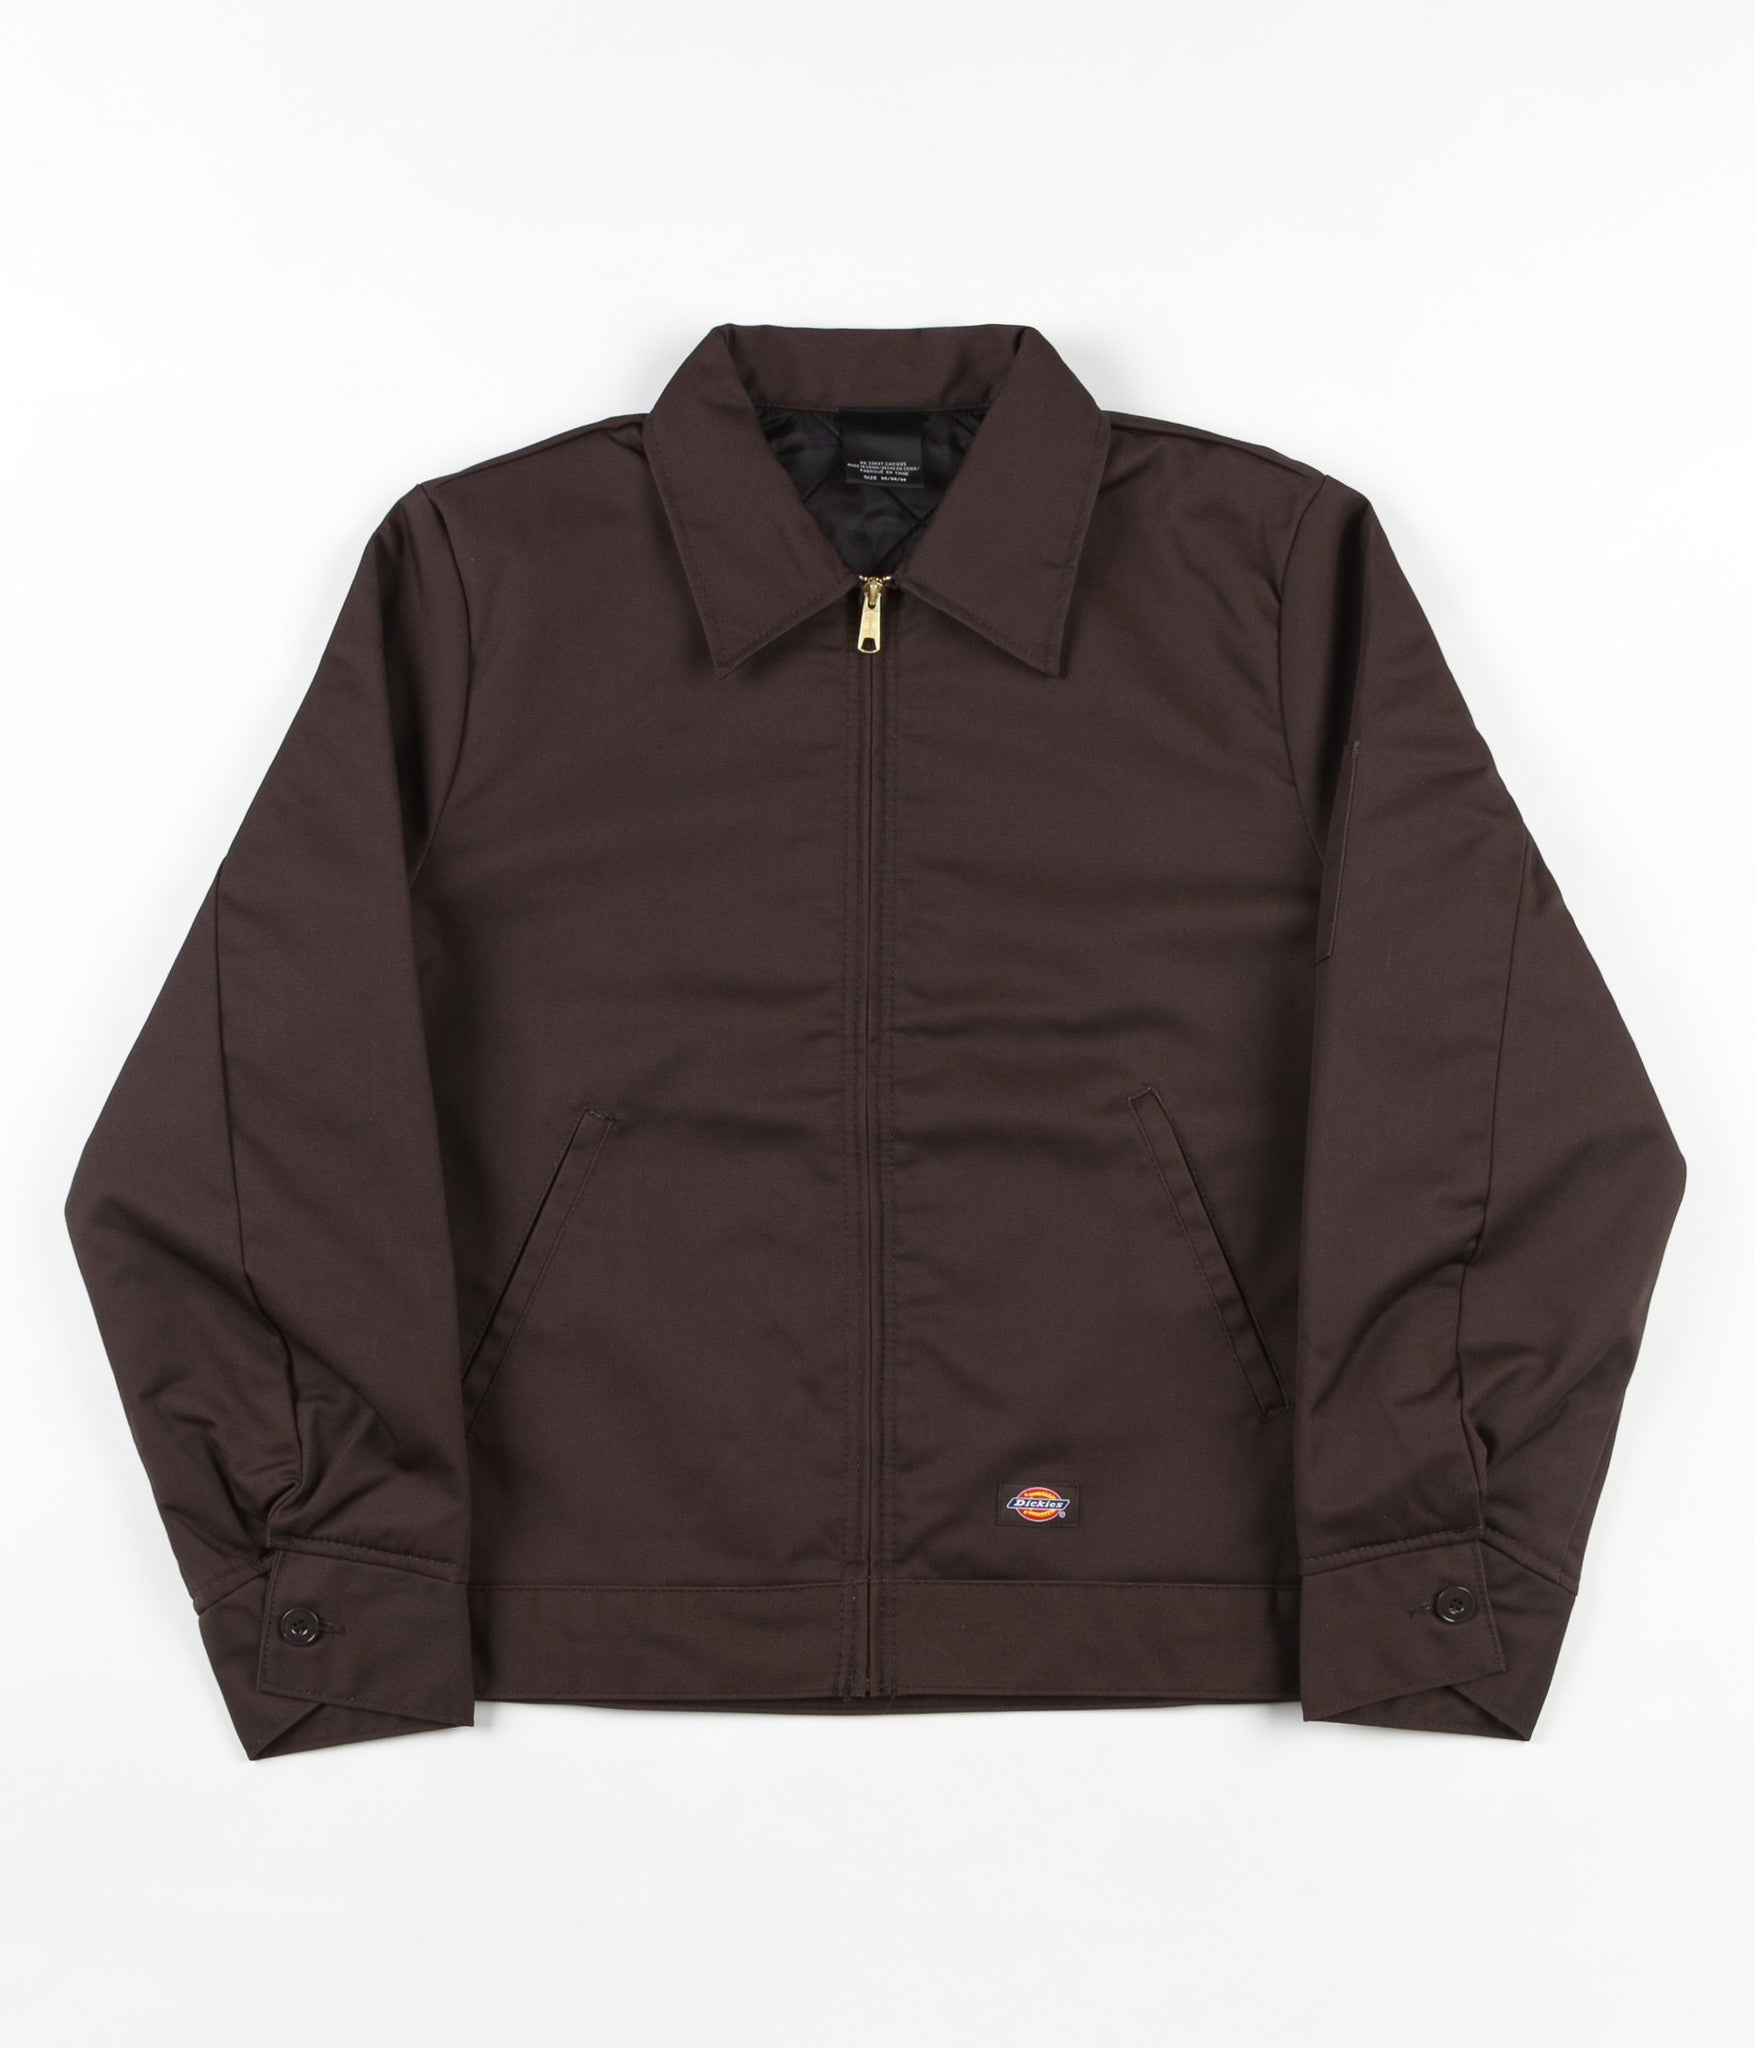 Dickies Lined Eisenhower Jacket - Dark Brown